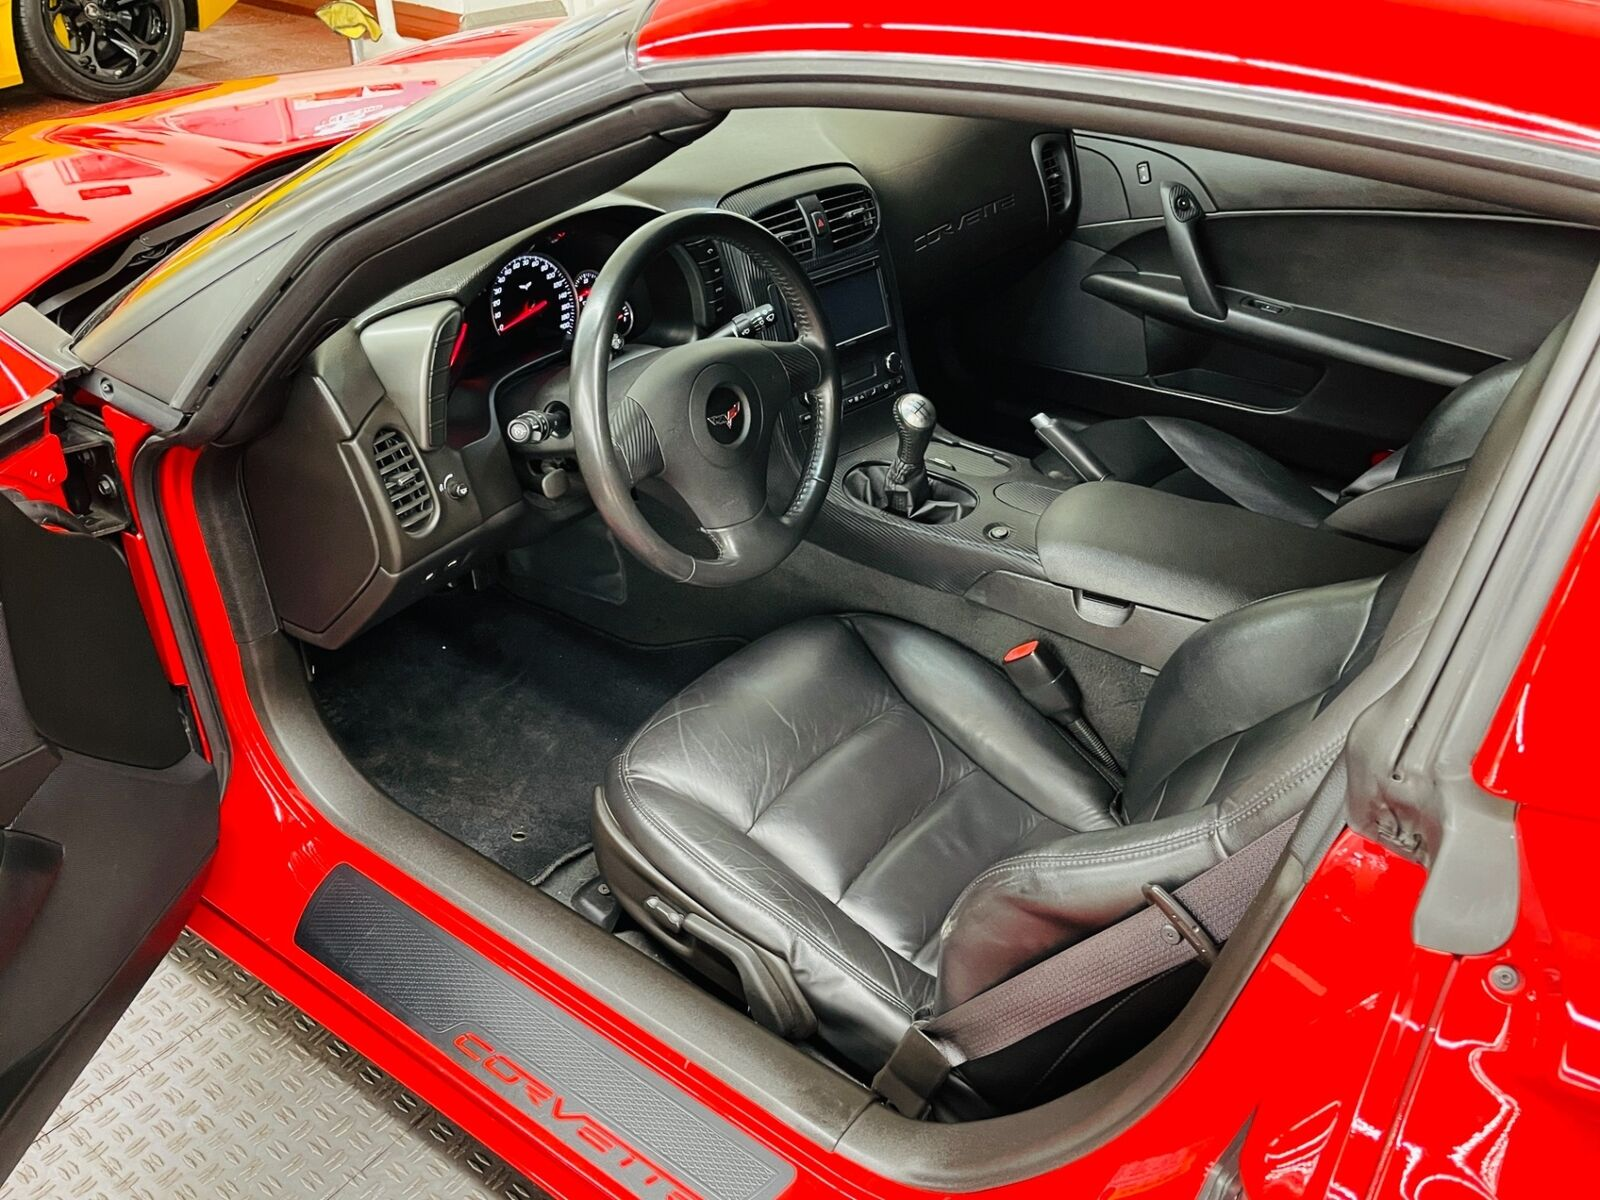 2007 Red Chevrolet Corvette   | C6 Corvette Photo 5